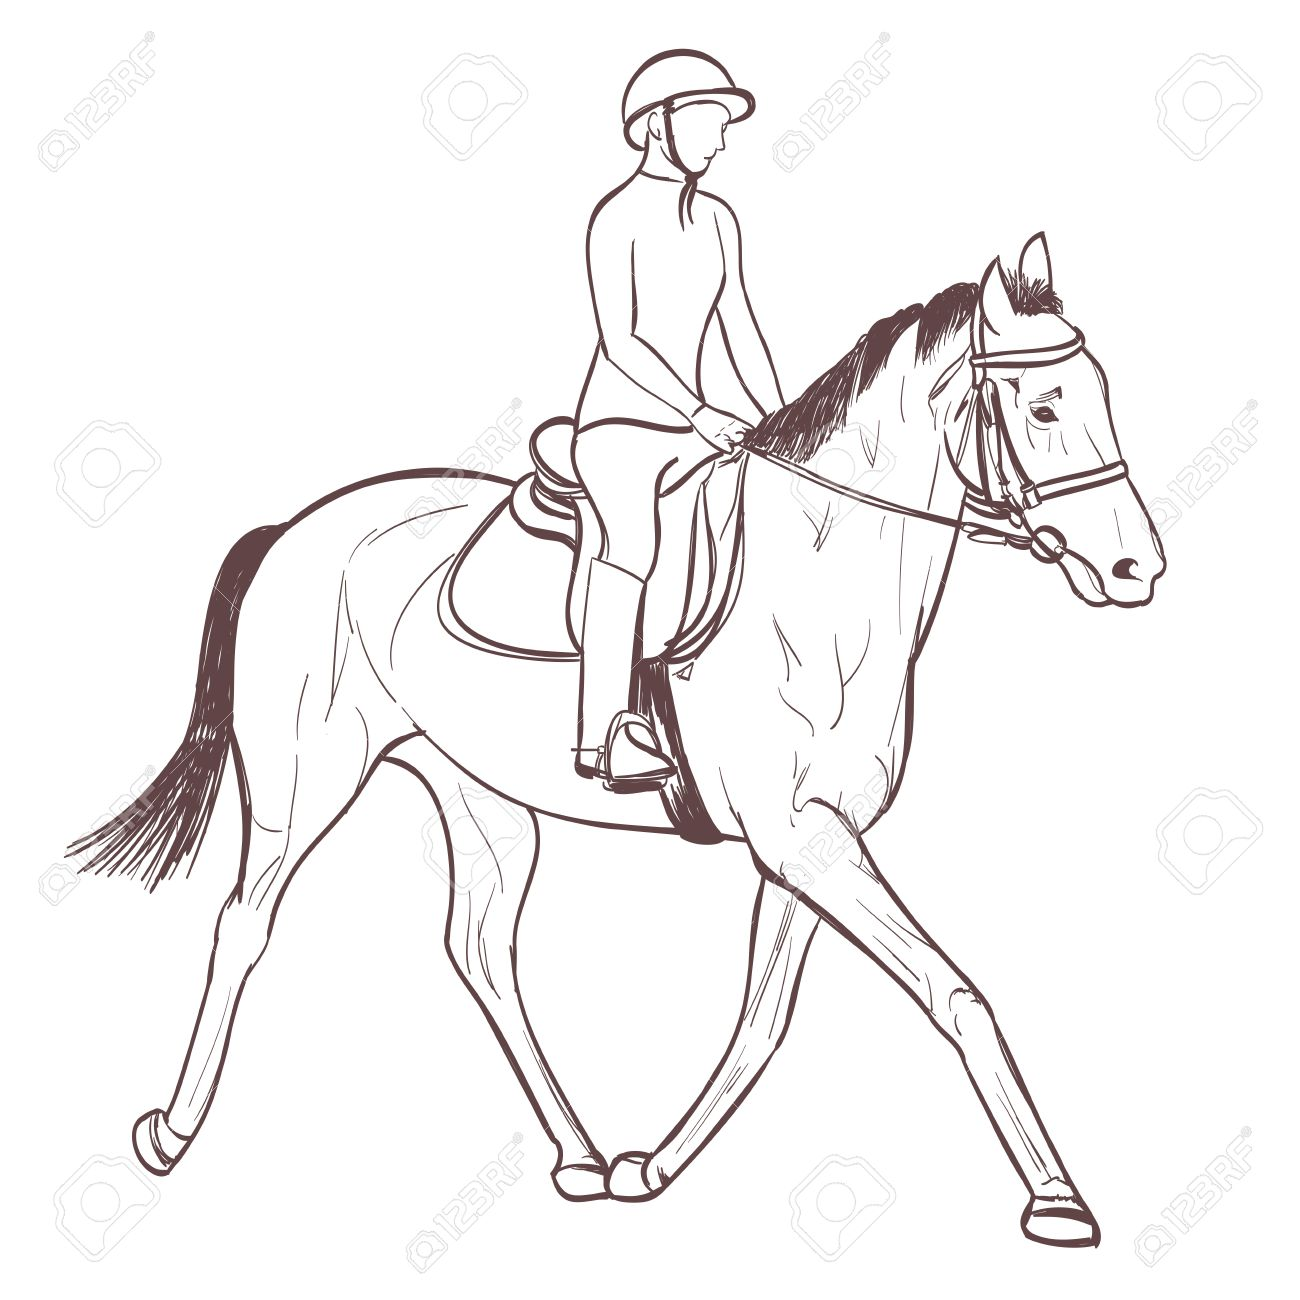 A Horse Rider Drawing Equestrian Sport Training Line Art Vector Royalty Free Cliparts Vectors And Stock Illustration Image 62142088